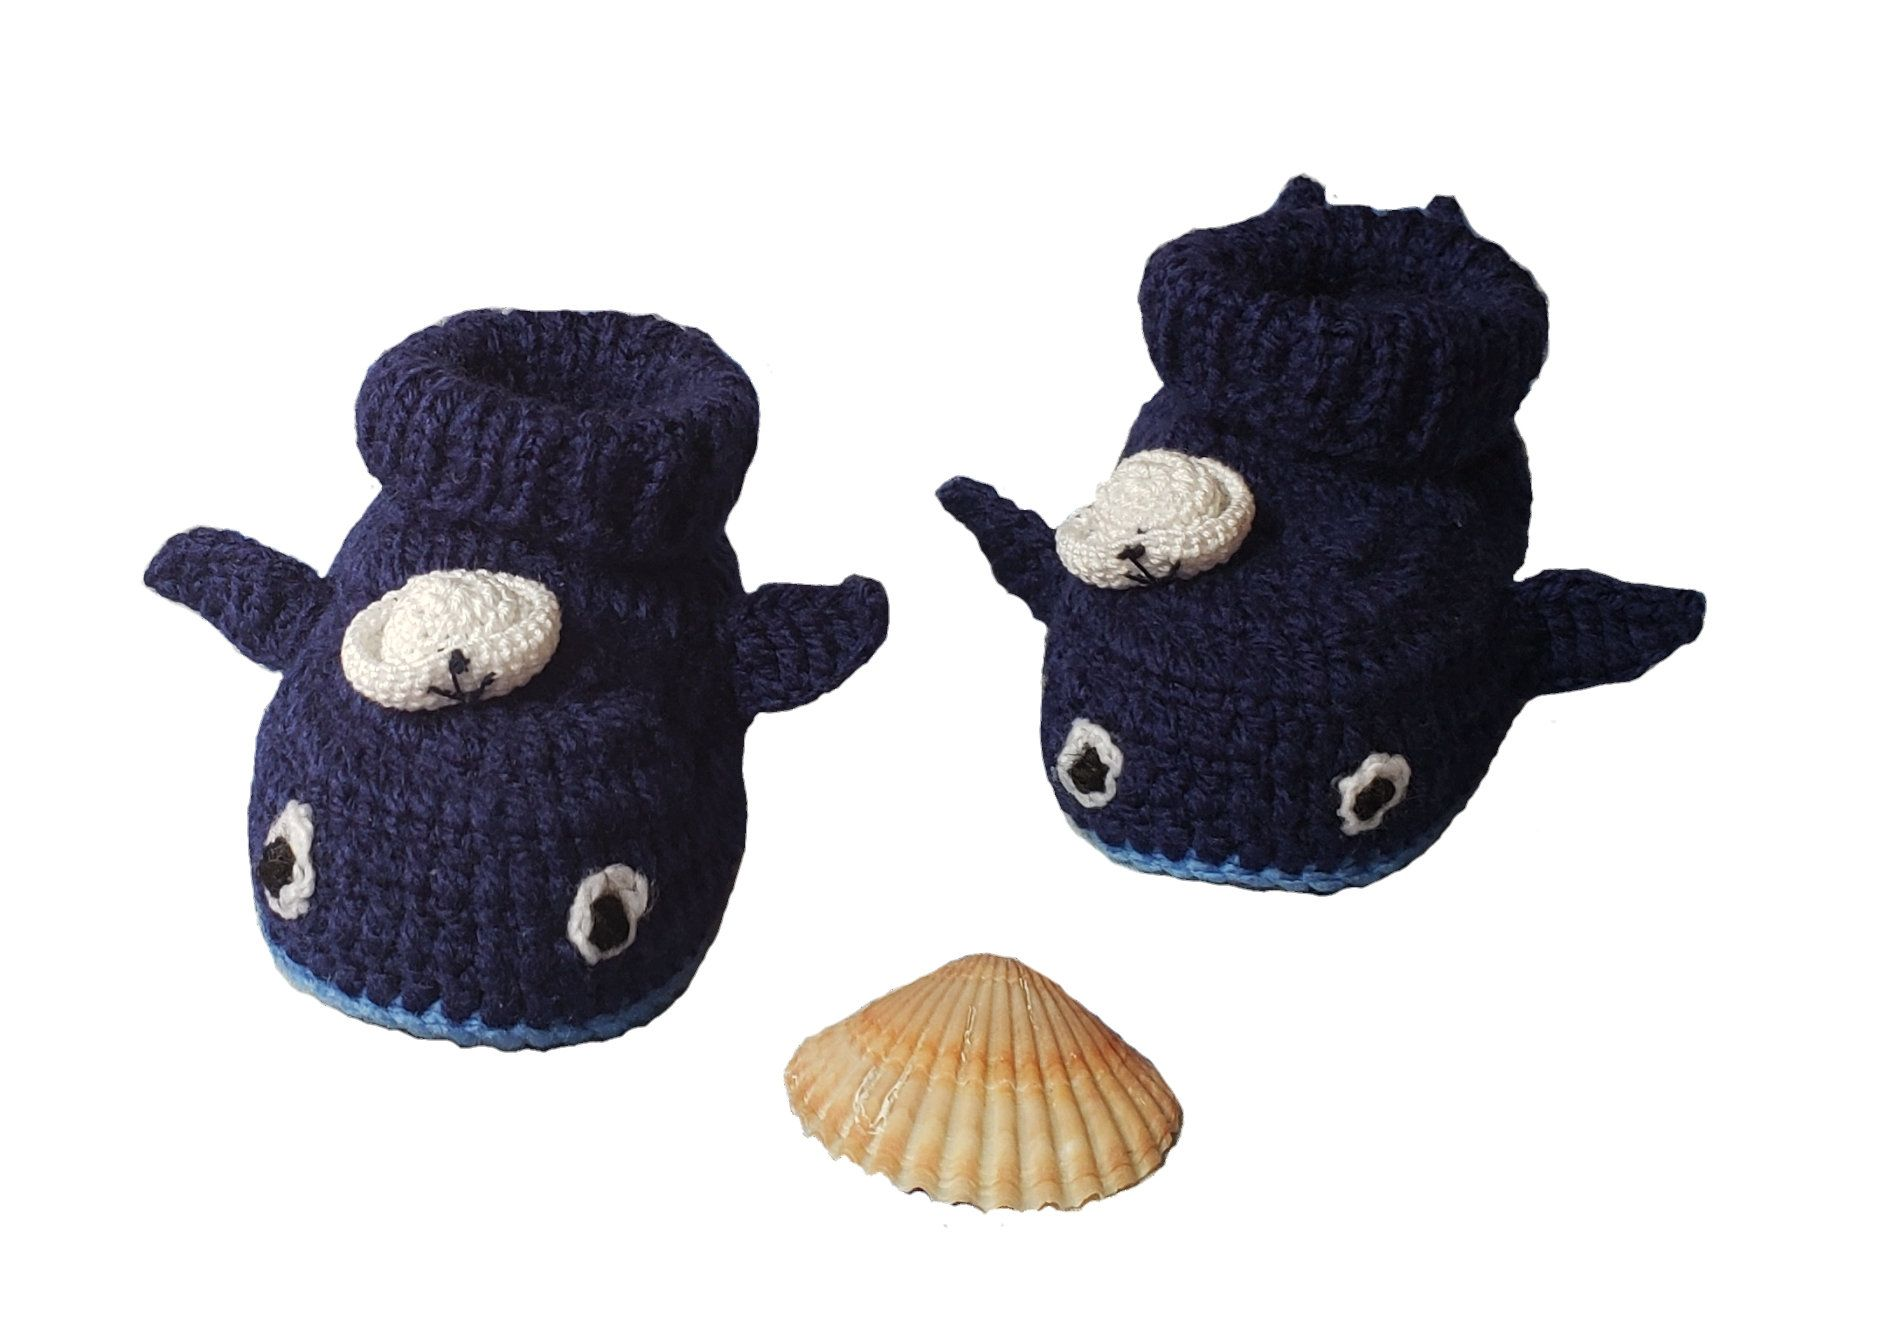 Photo of Blue Whale Baby Booties- Cute Whale Plush Slippers- Crochet Whale Booties- Baby Boy's Bootie Slippers- Baby Boy Whale Shoes, Baby shower